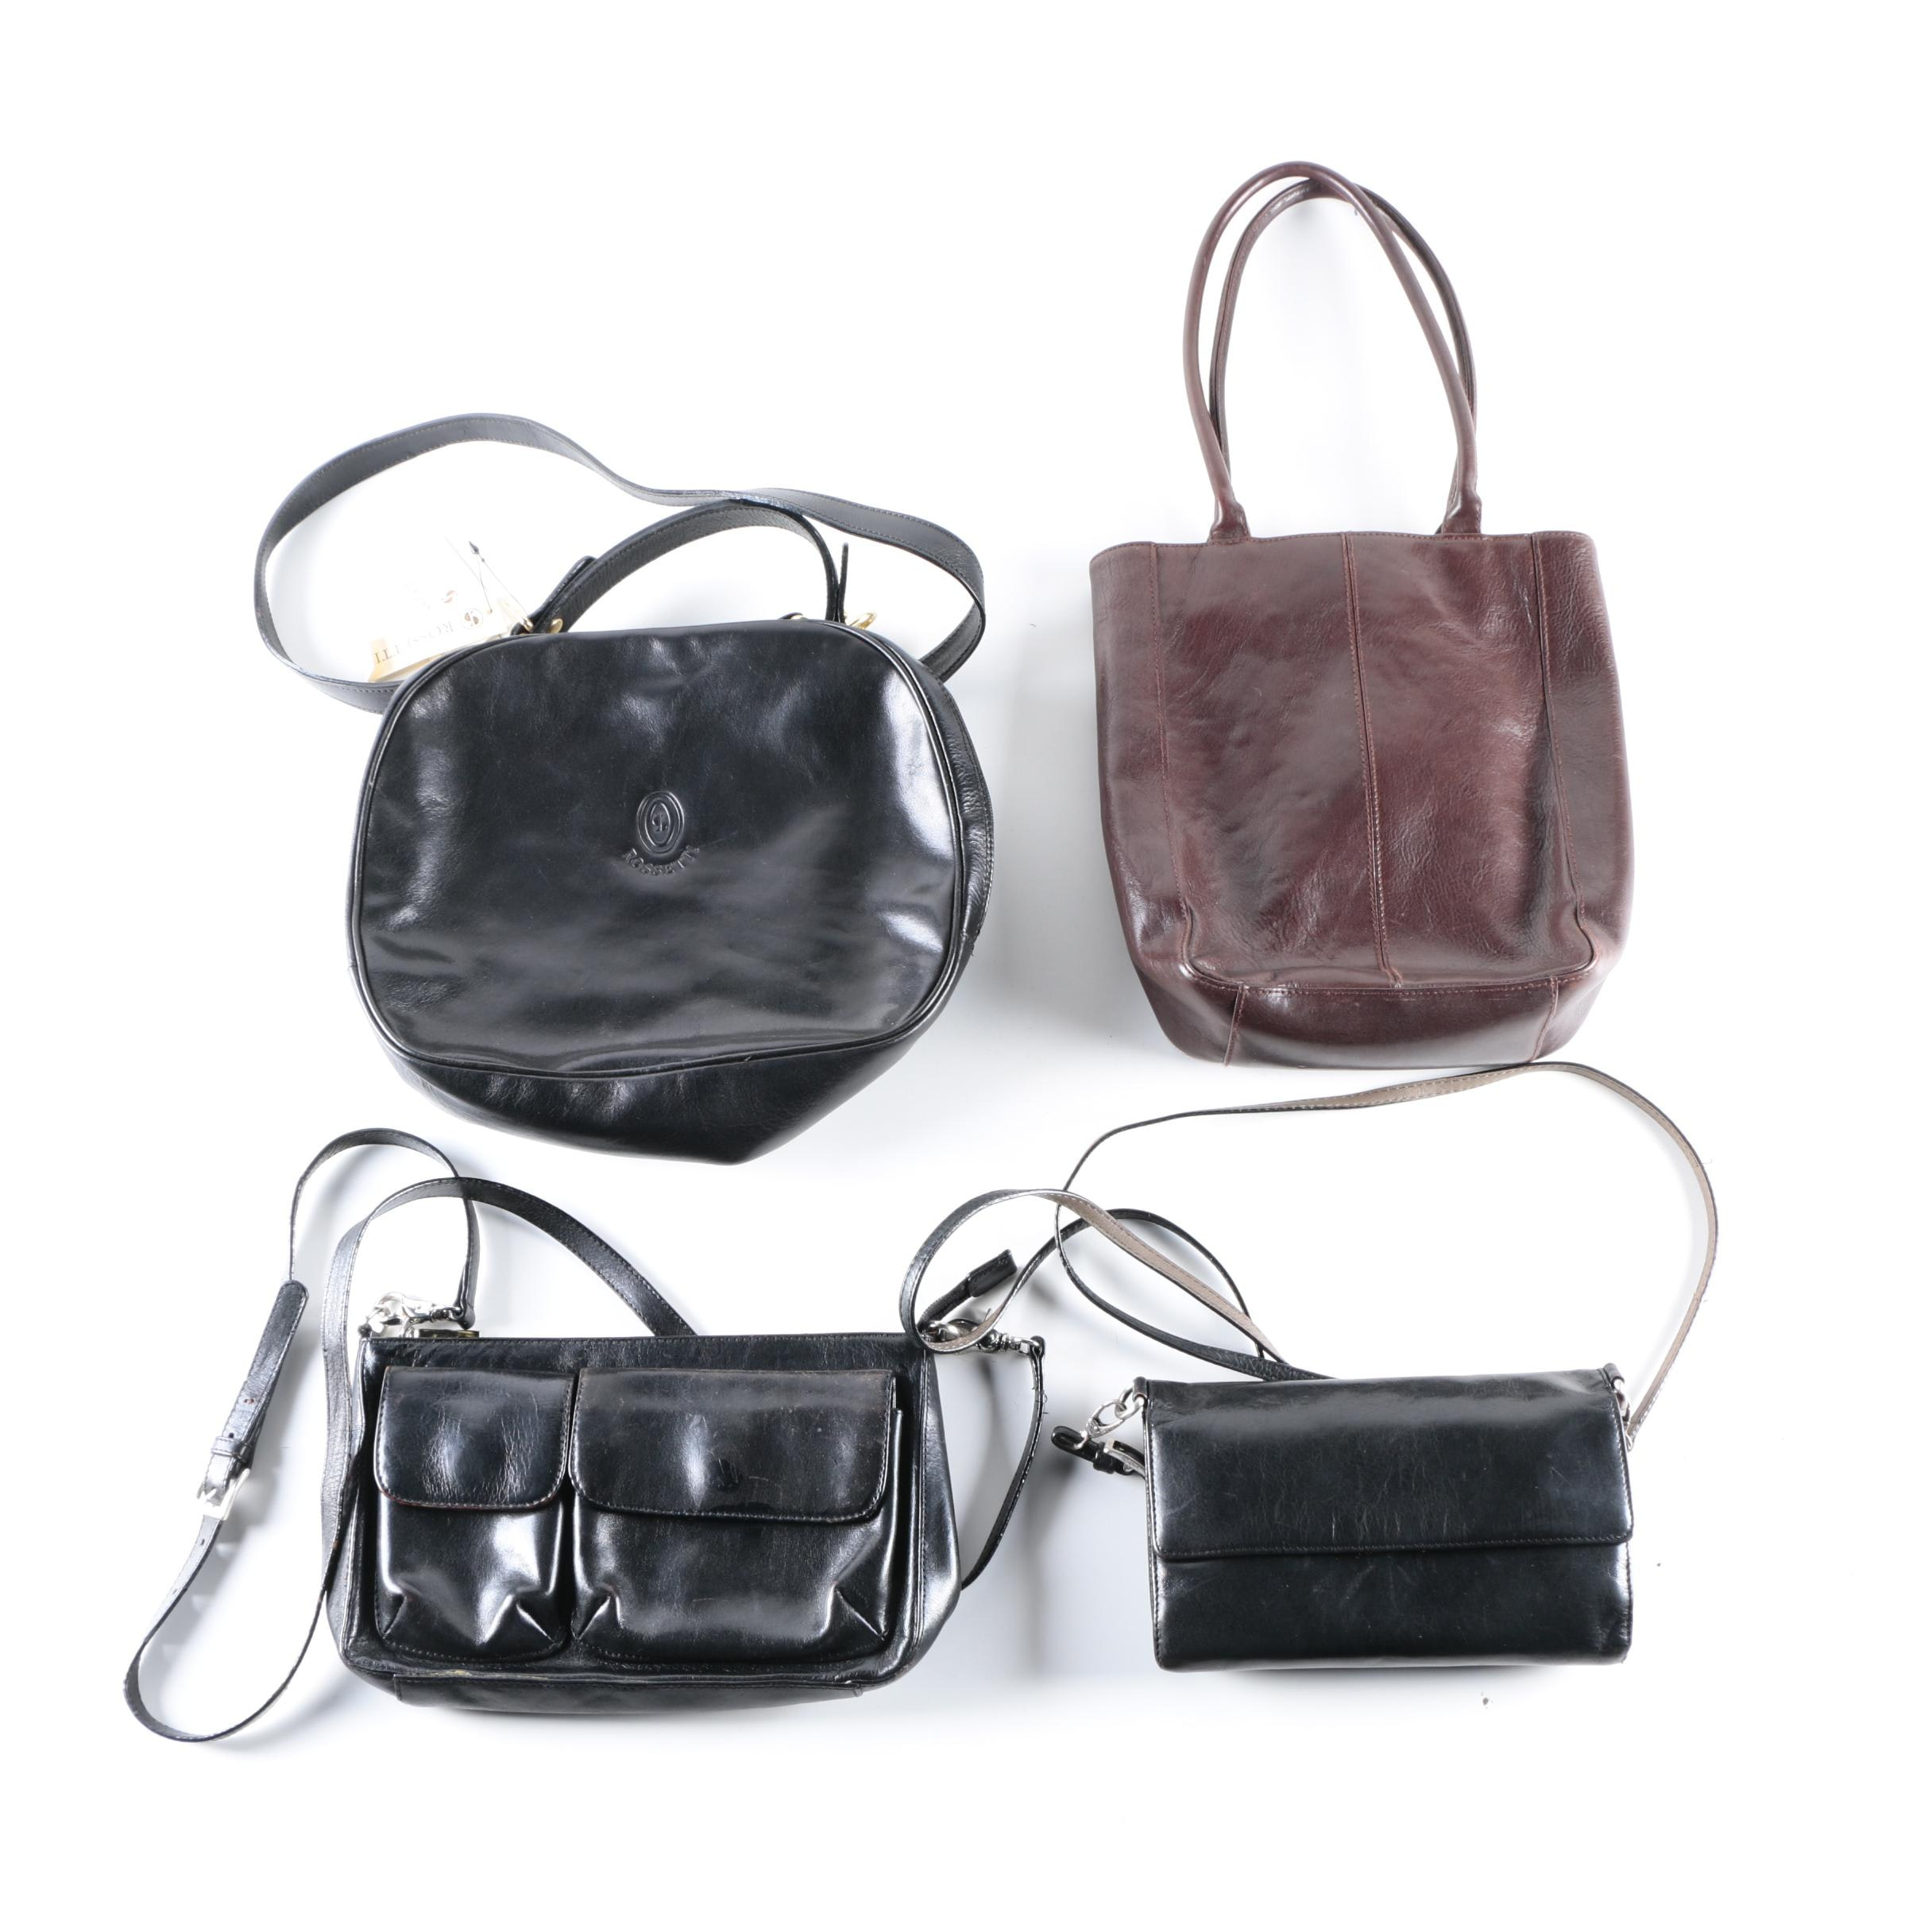 Hobo International and Rossetti Leather Handbags